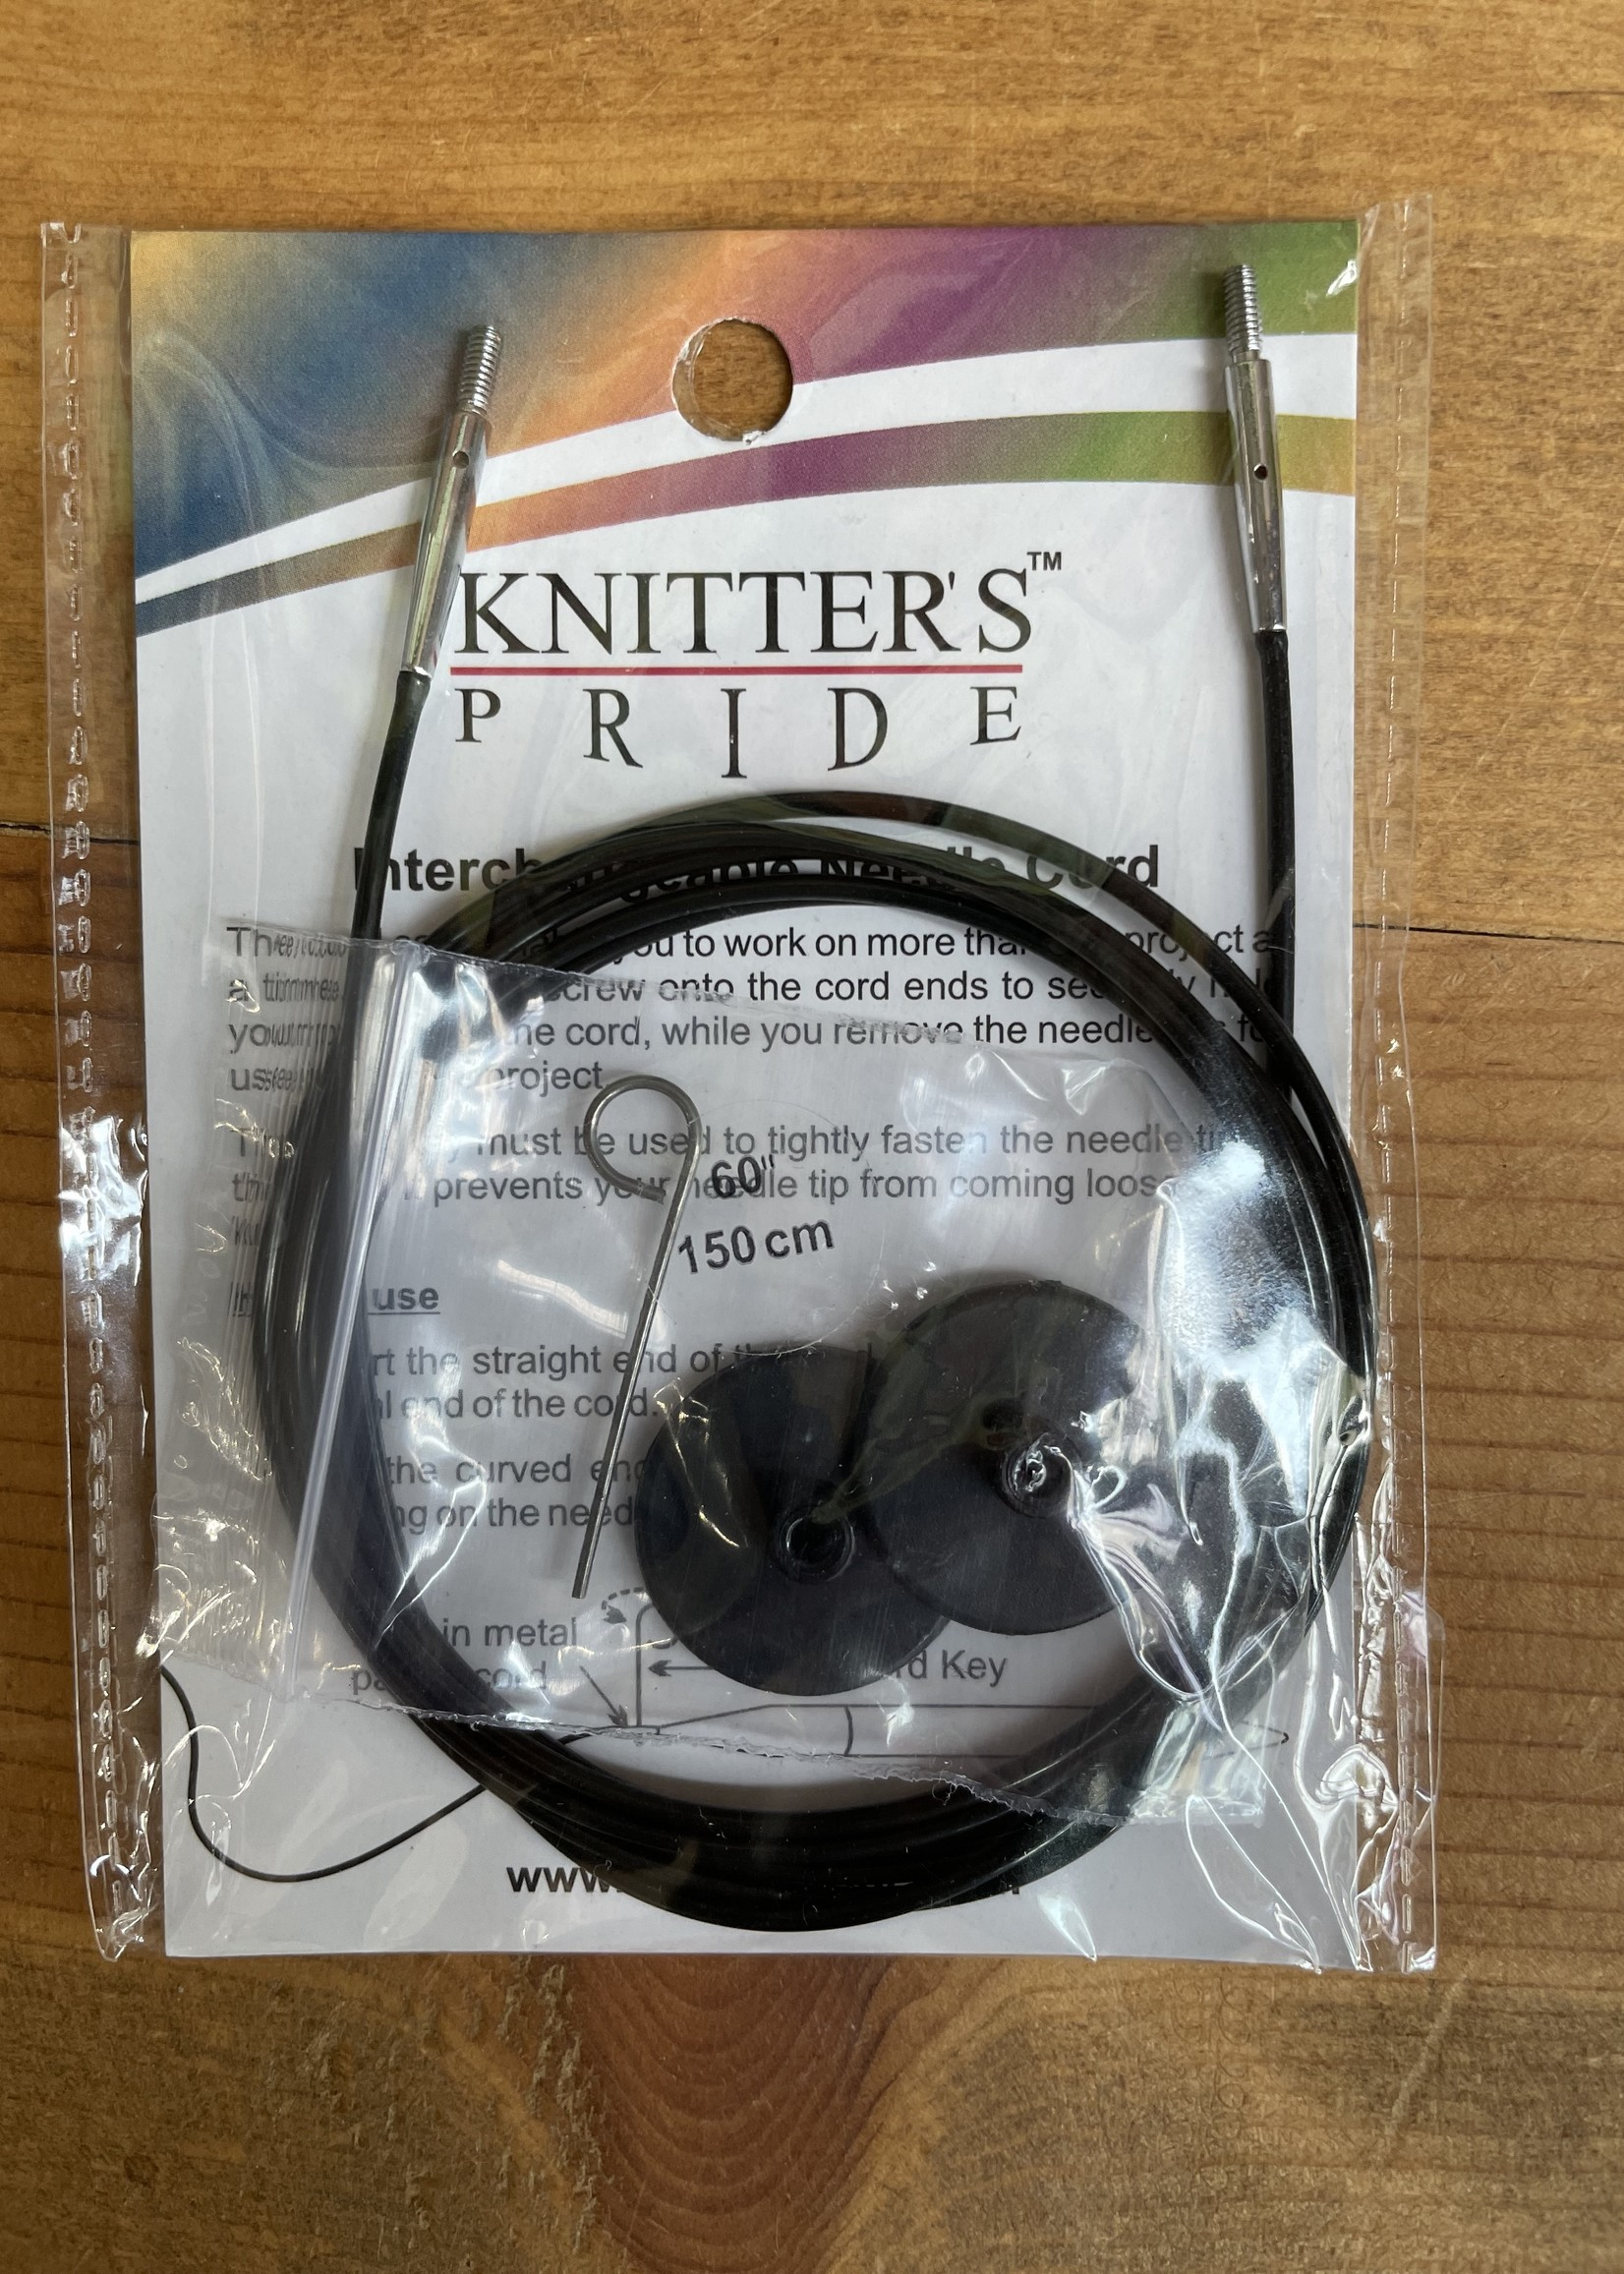 knitters Pride Interchangeable Needle Cord